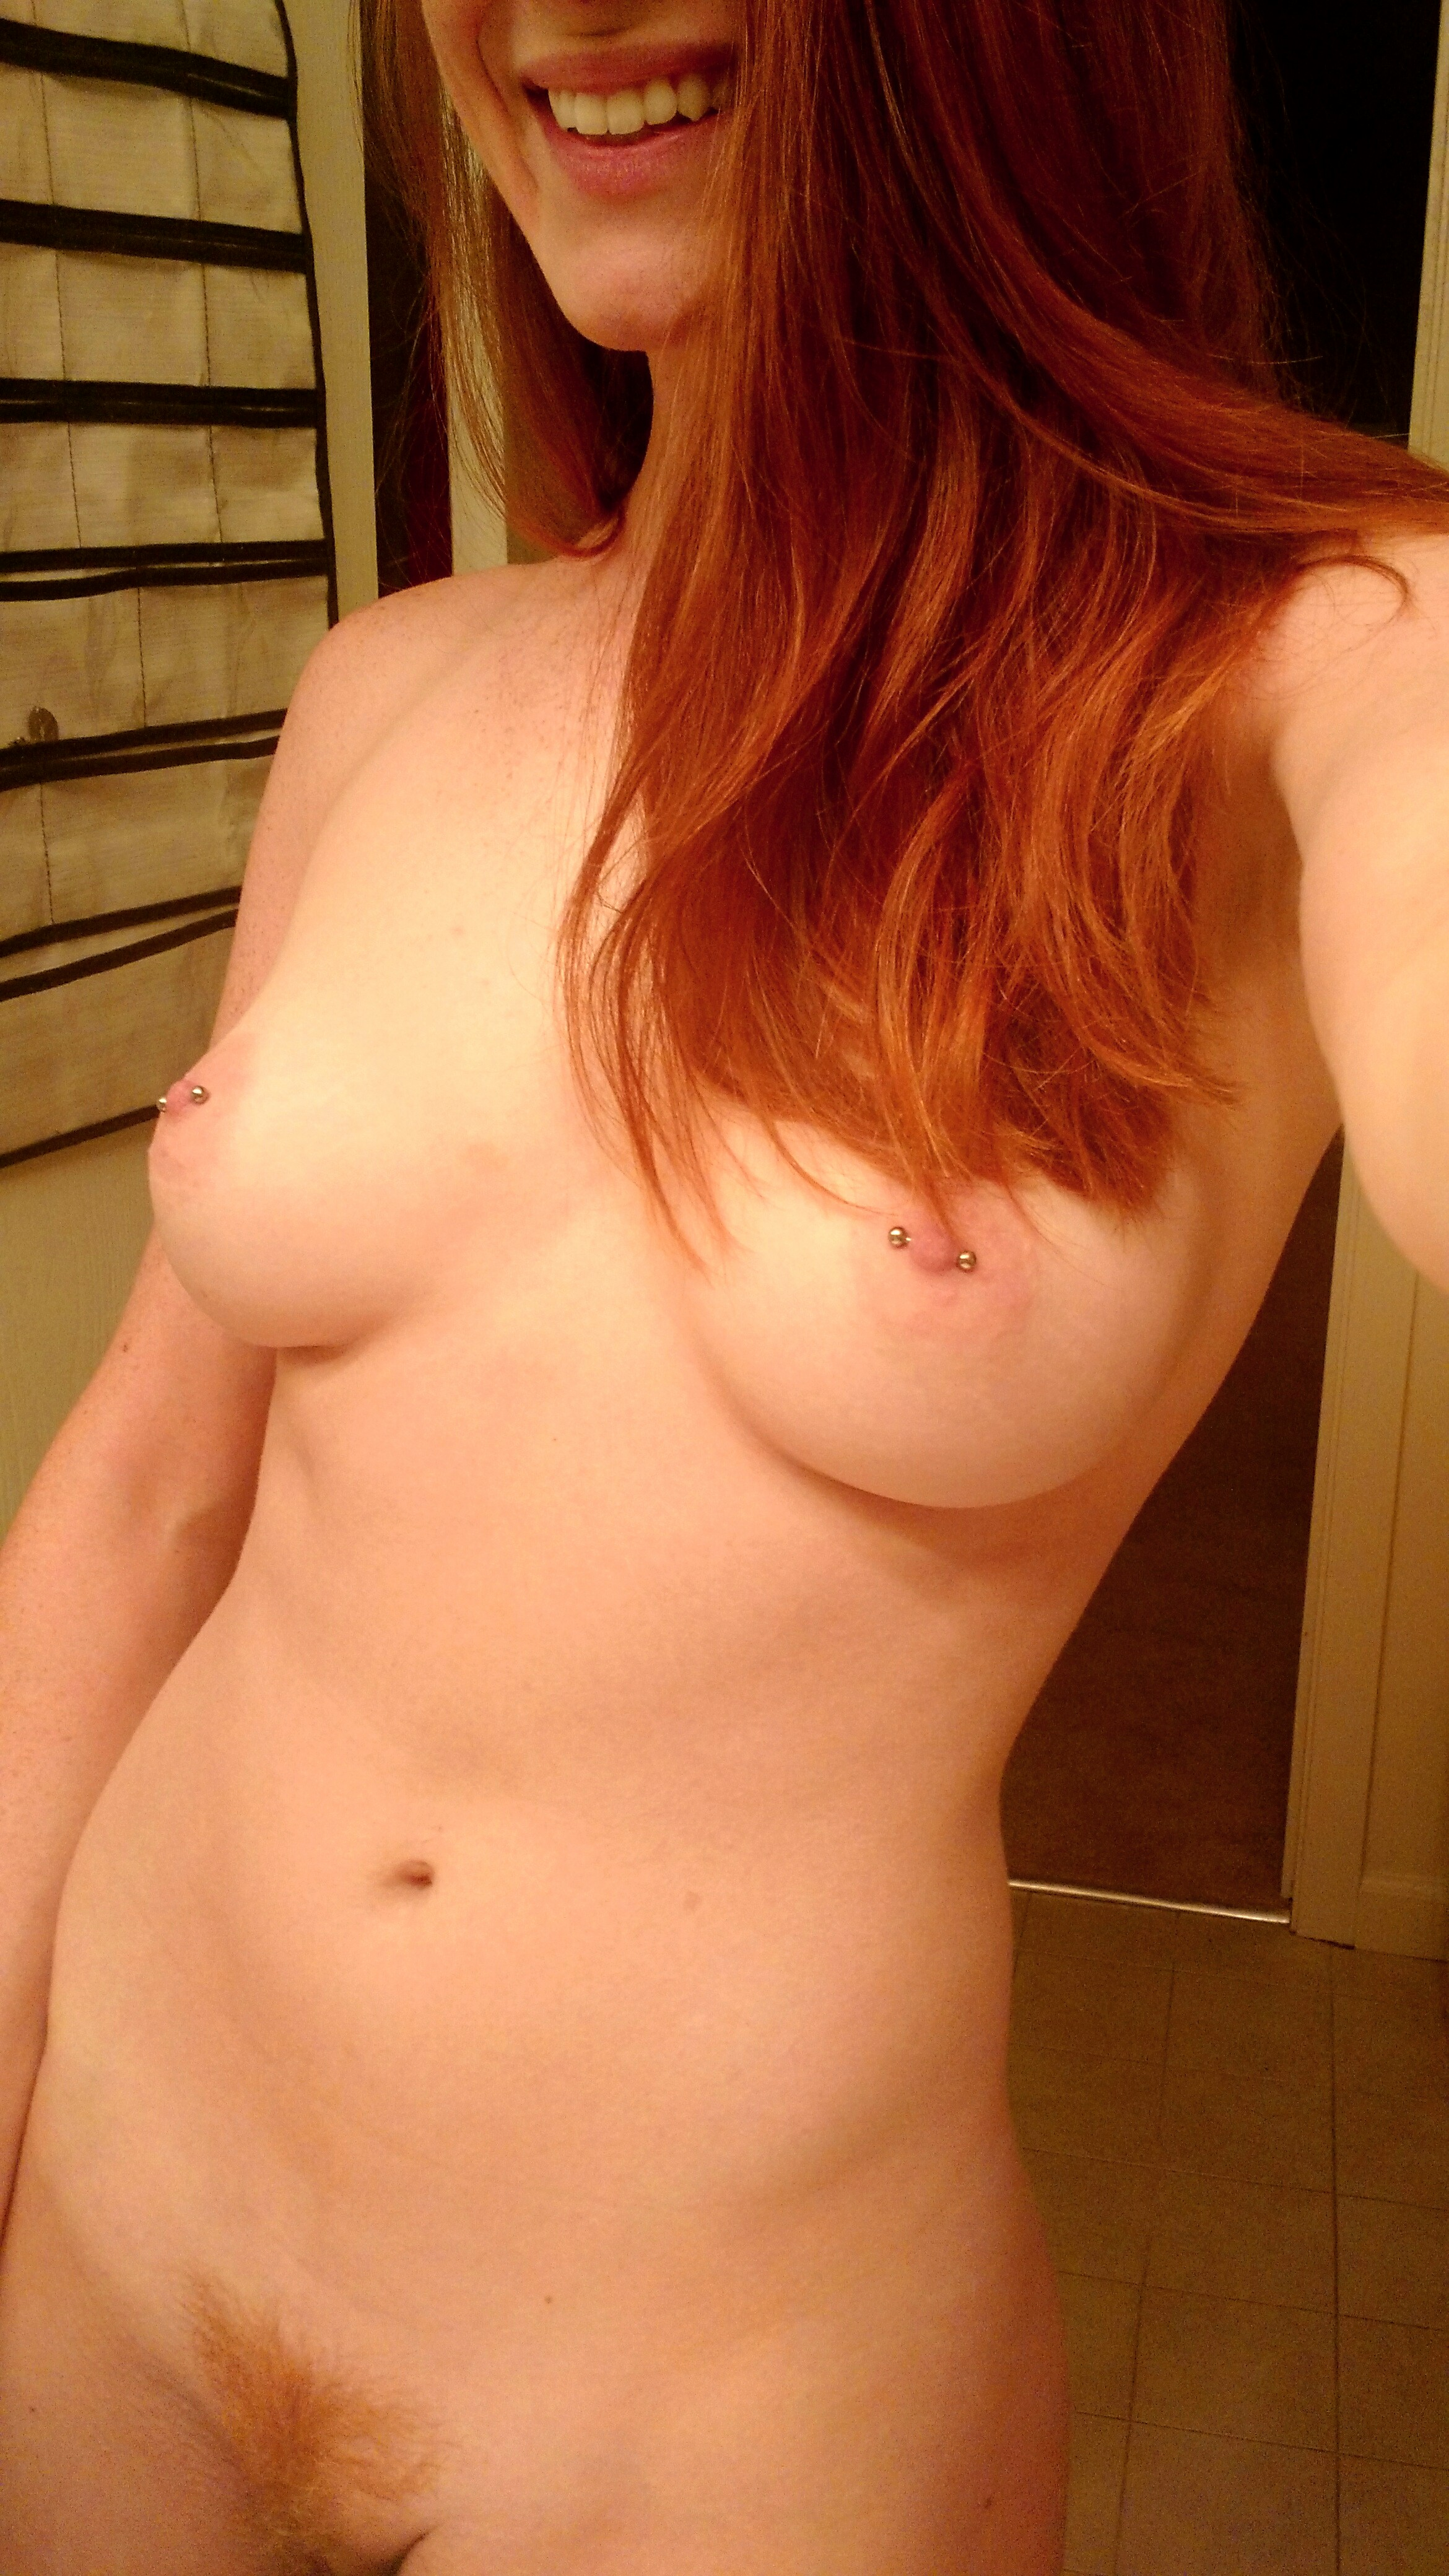 [Redhead Amateurs] Have a great day, ginger fans!